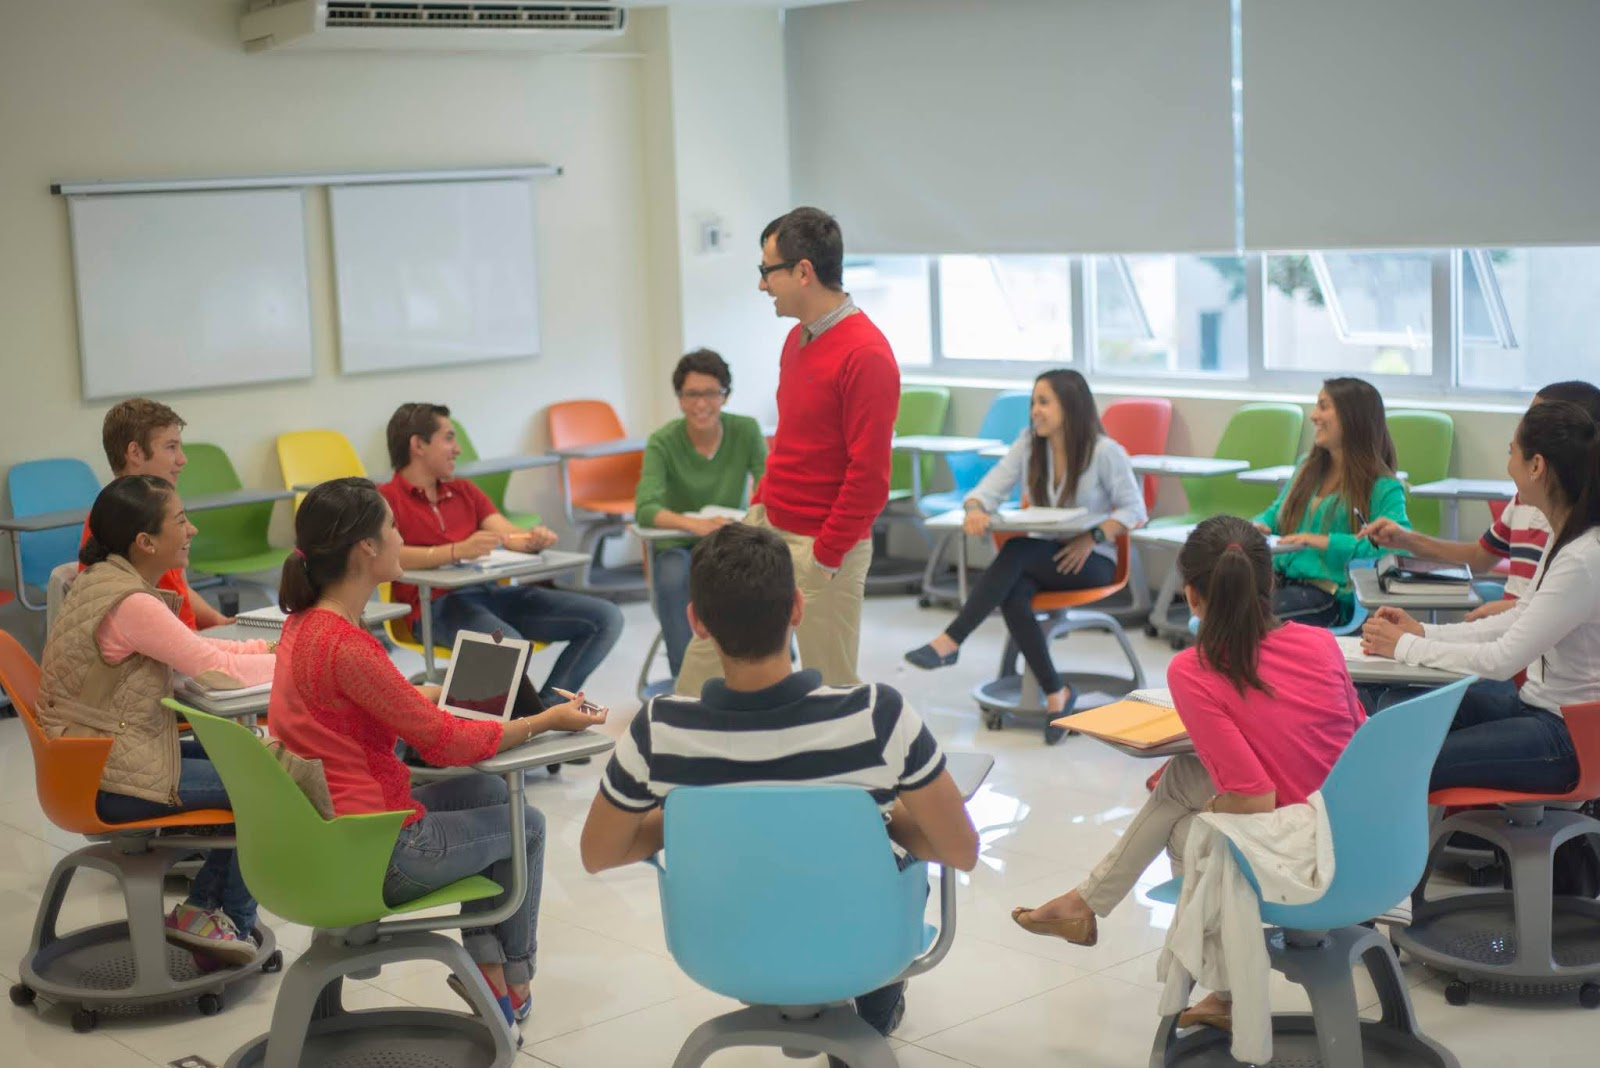 Male teacher standing in the centre of circle of students sitting in chair desks on wheels